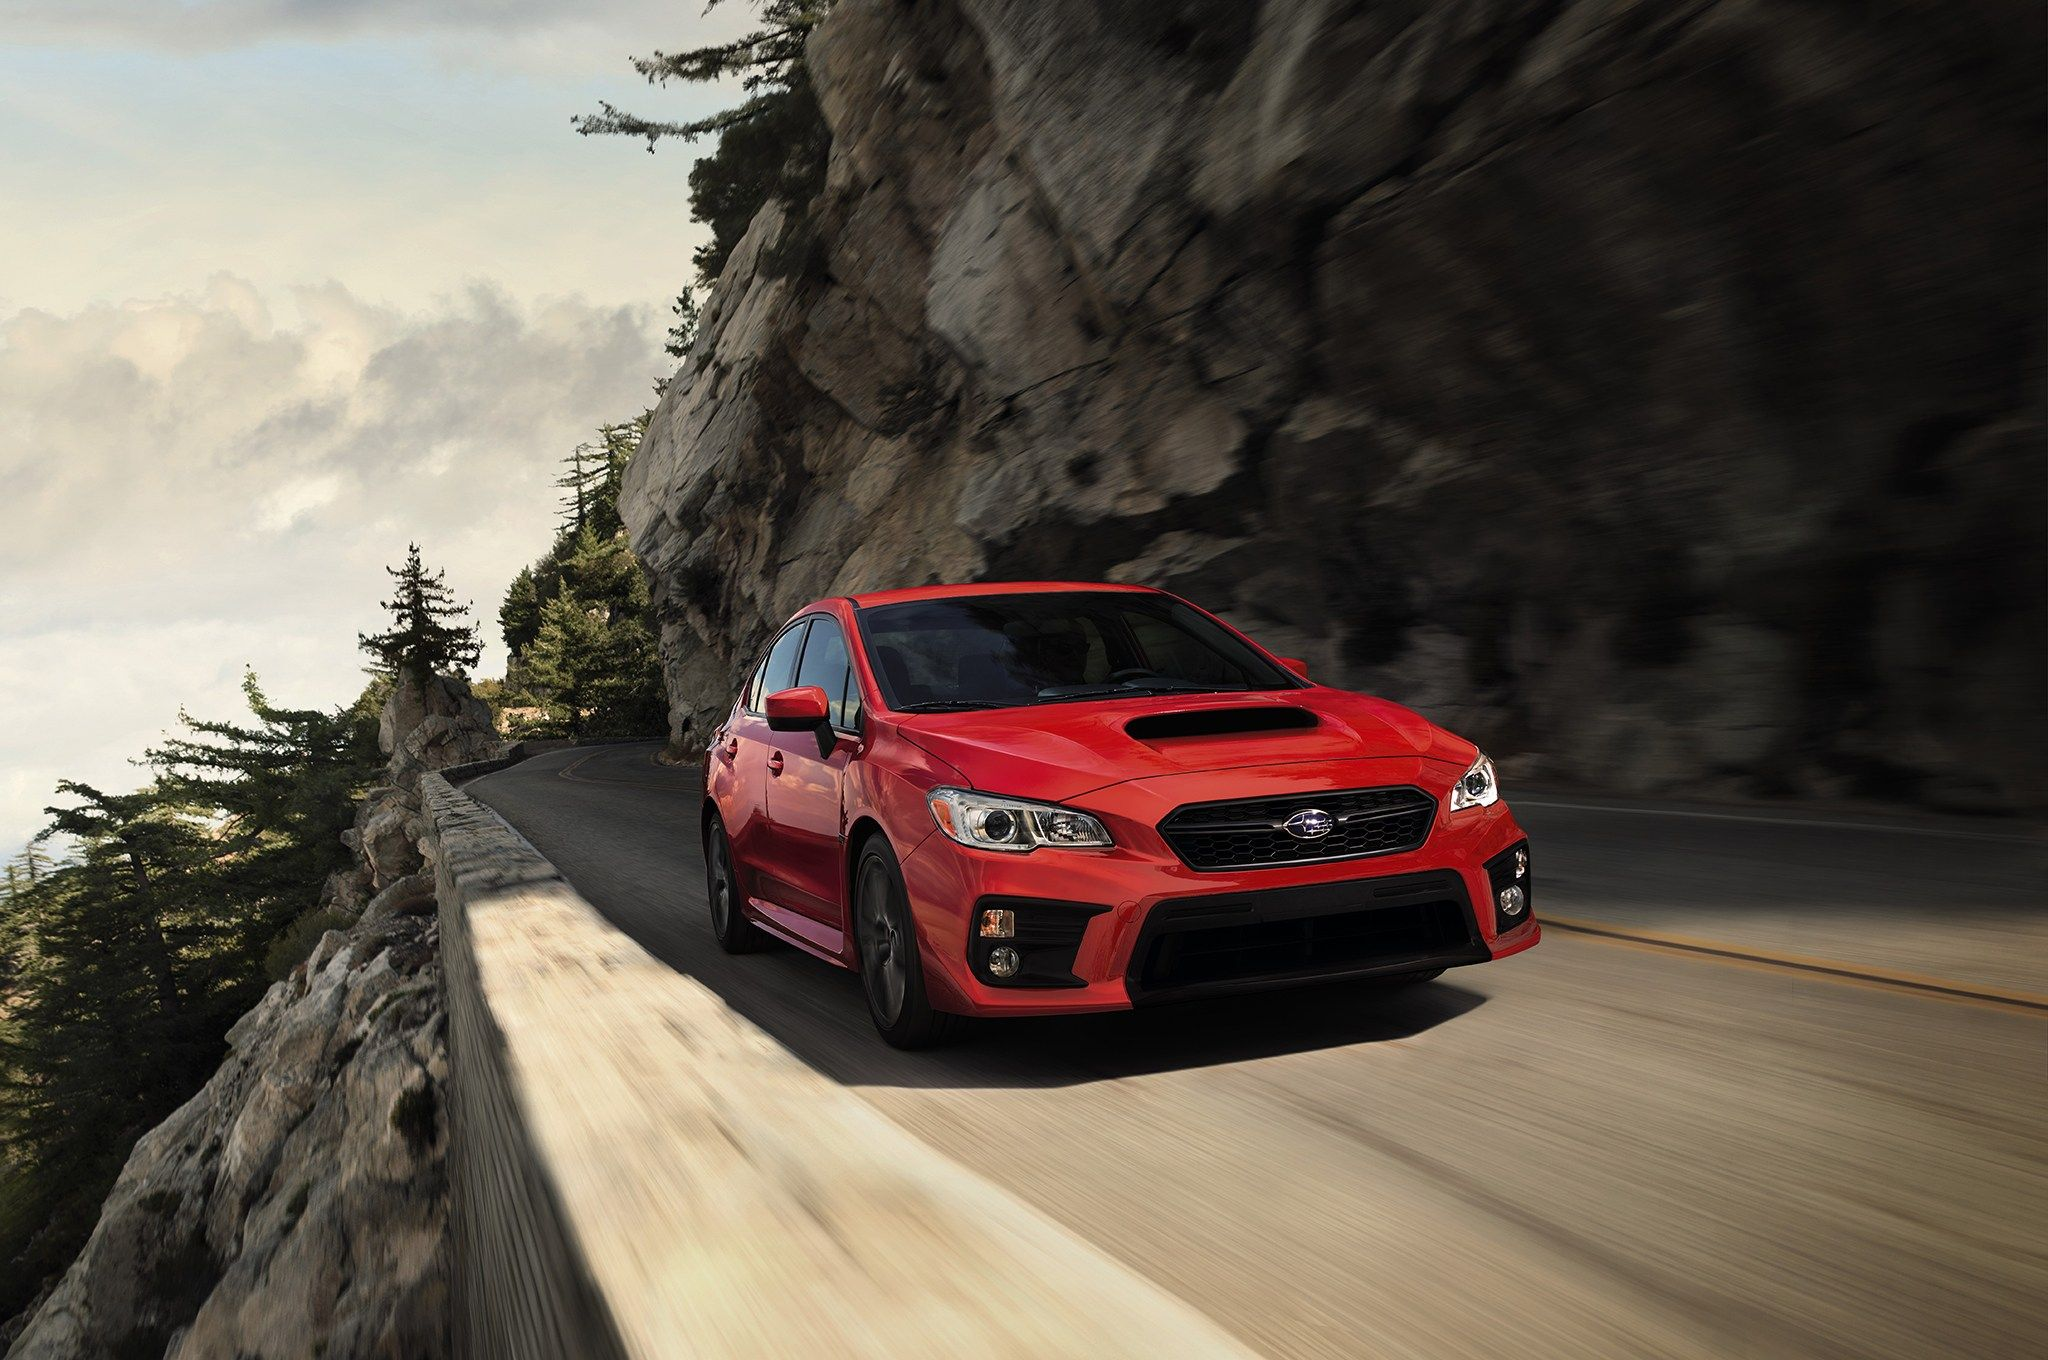 2015 Sti For Sale >> The 2018 Subaru Wrx Goes On Sale This Spring With A Starting